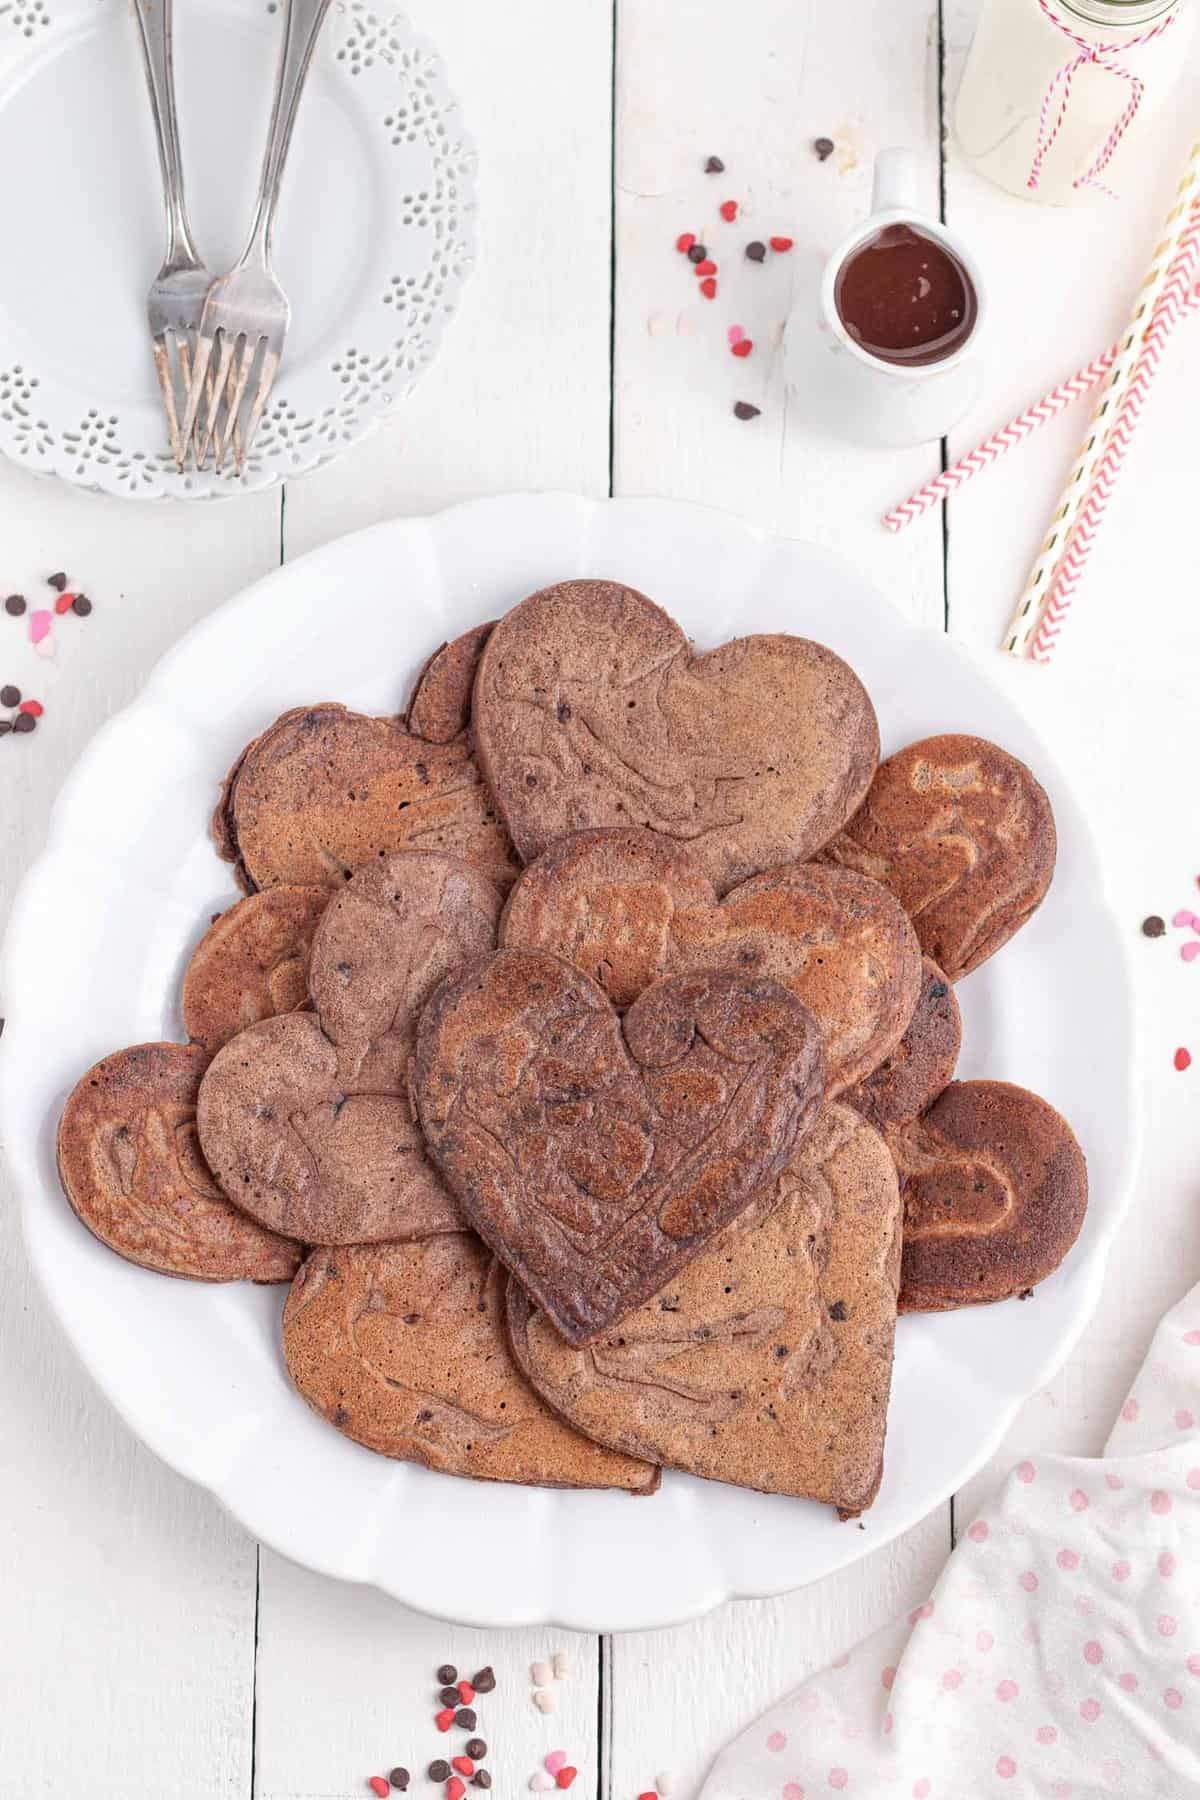 Messy pile of chocolate pancakes on a plate. Pancakes are heart-shaped.